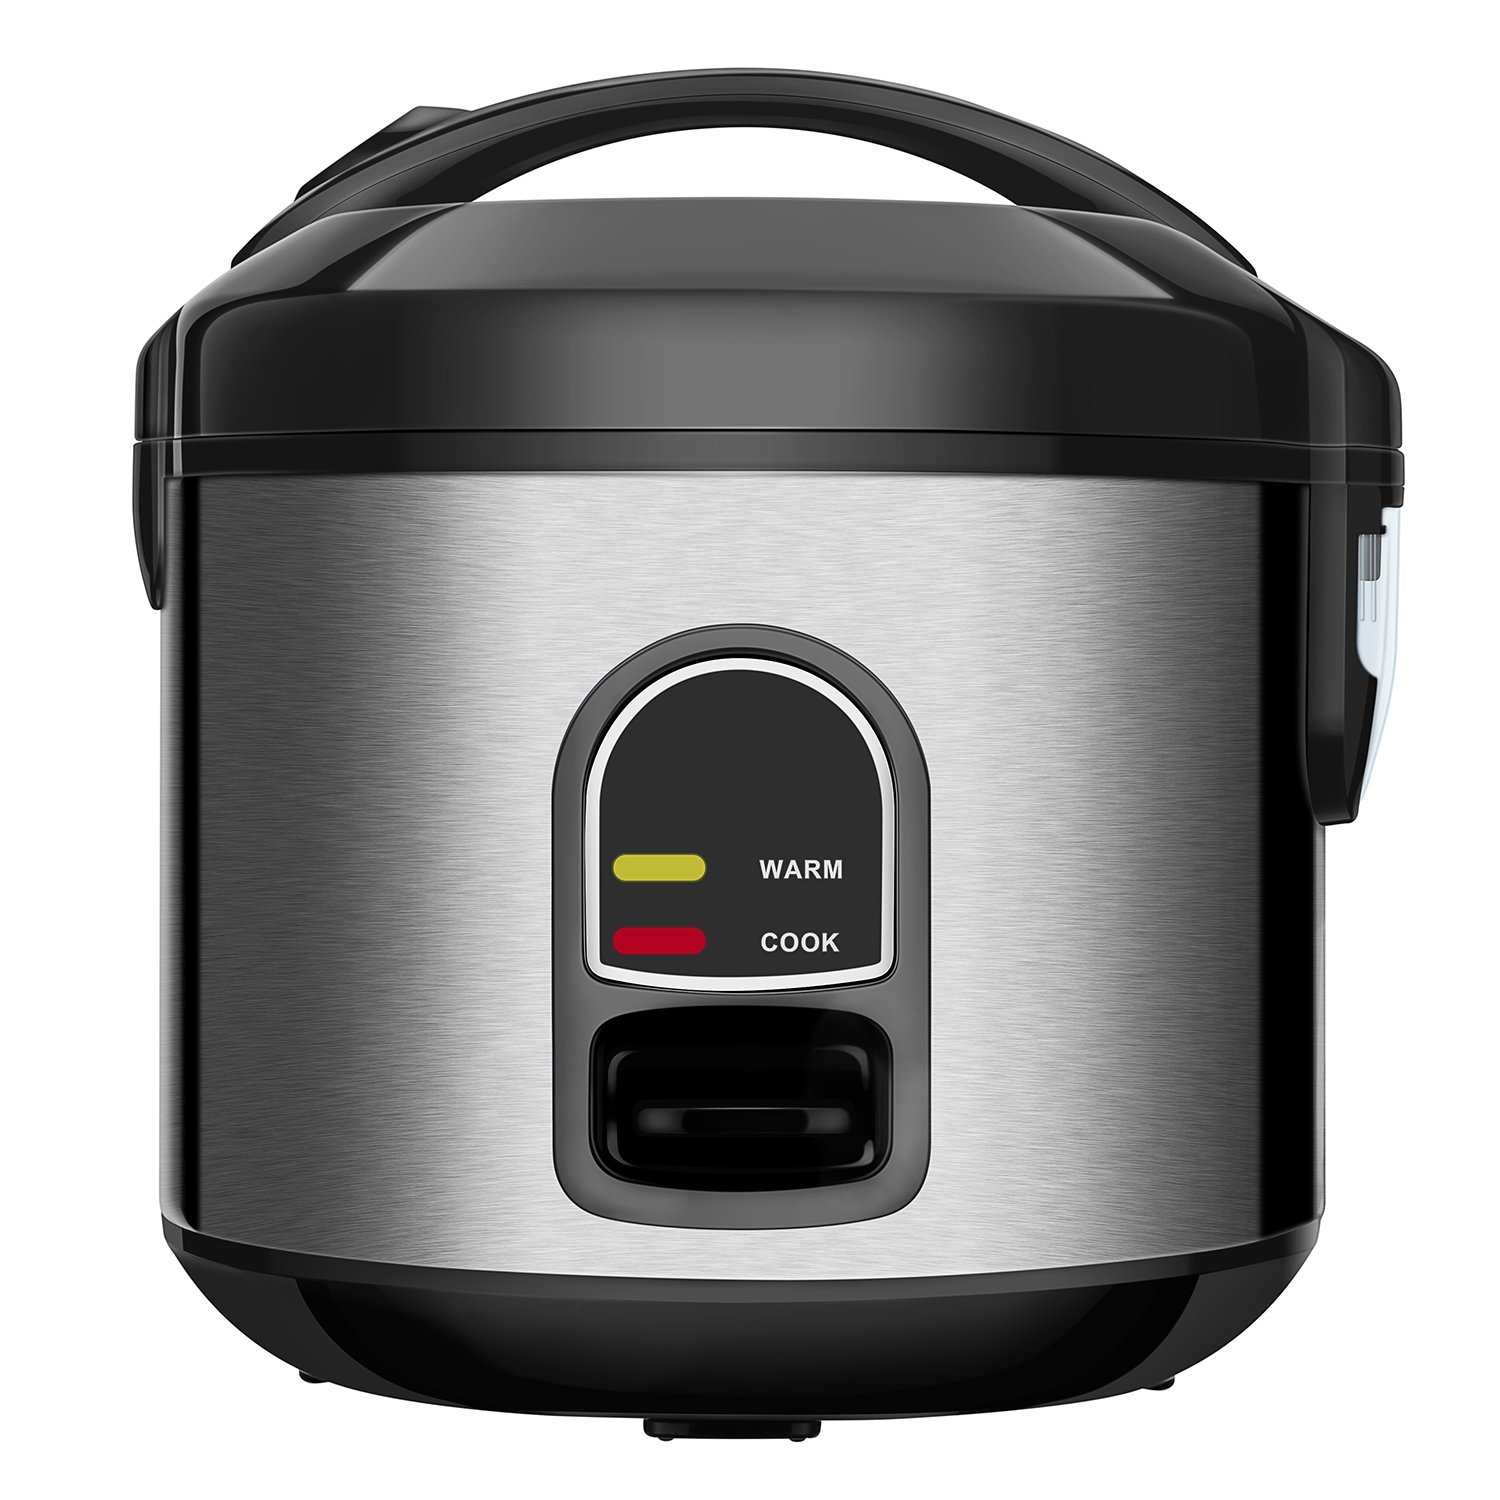 Small Rice Cooker Food Steamer, Home Gizmo 5-Cup (Uncooked) Mini Rice Cooker Multi-Food Steamer for Grains and Hot Cereal with One-Touch Control and Automatic Keep Warm Function by Home Gizmo (Image #1)